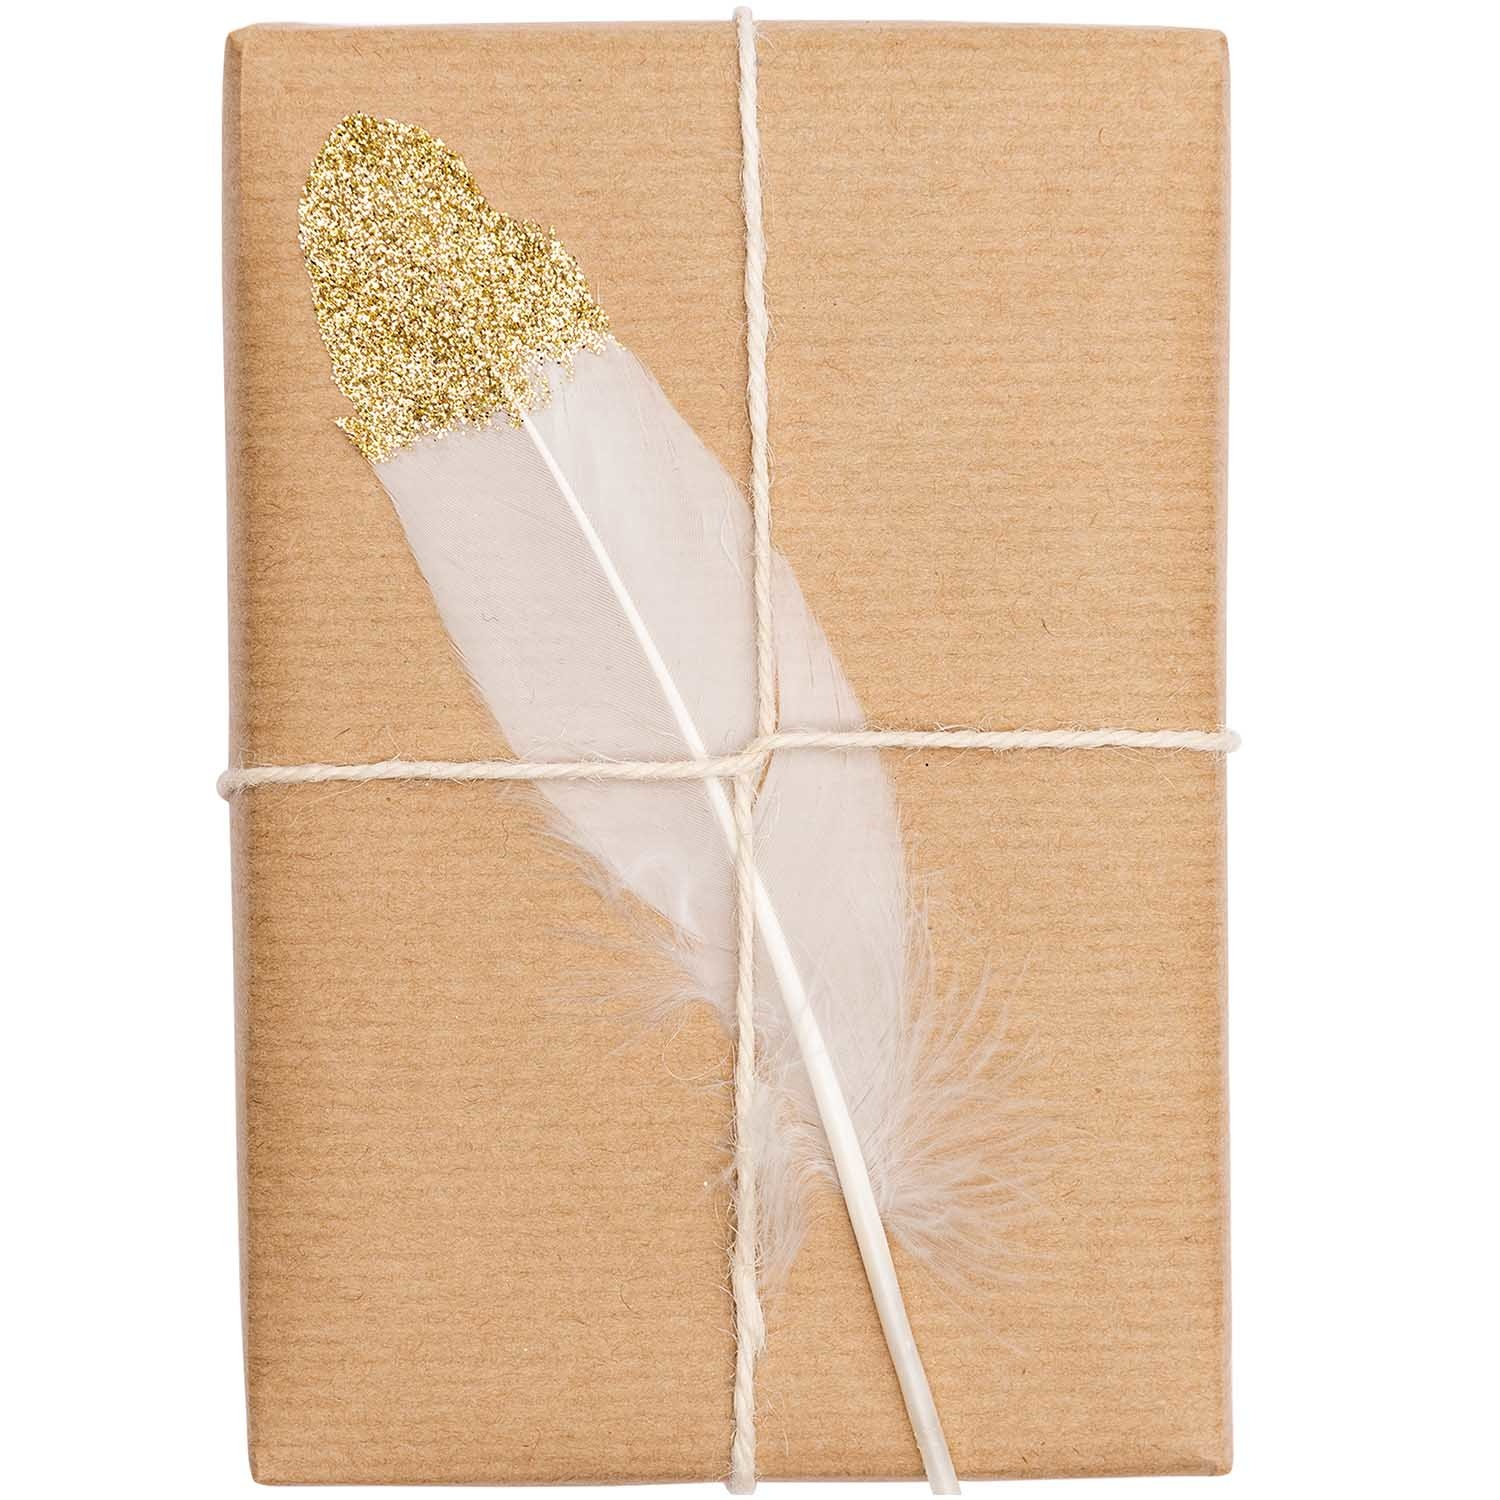 Rico NAY FEATHERS, SMALL, WHITE/GOLD 6 PCS, CA. 8 CM